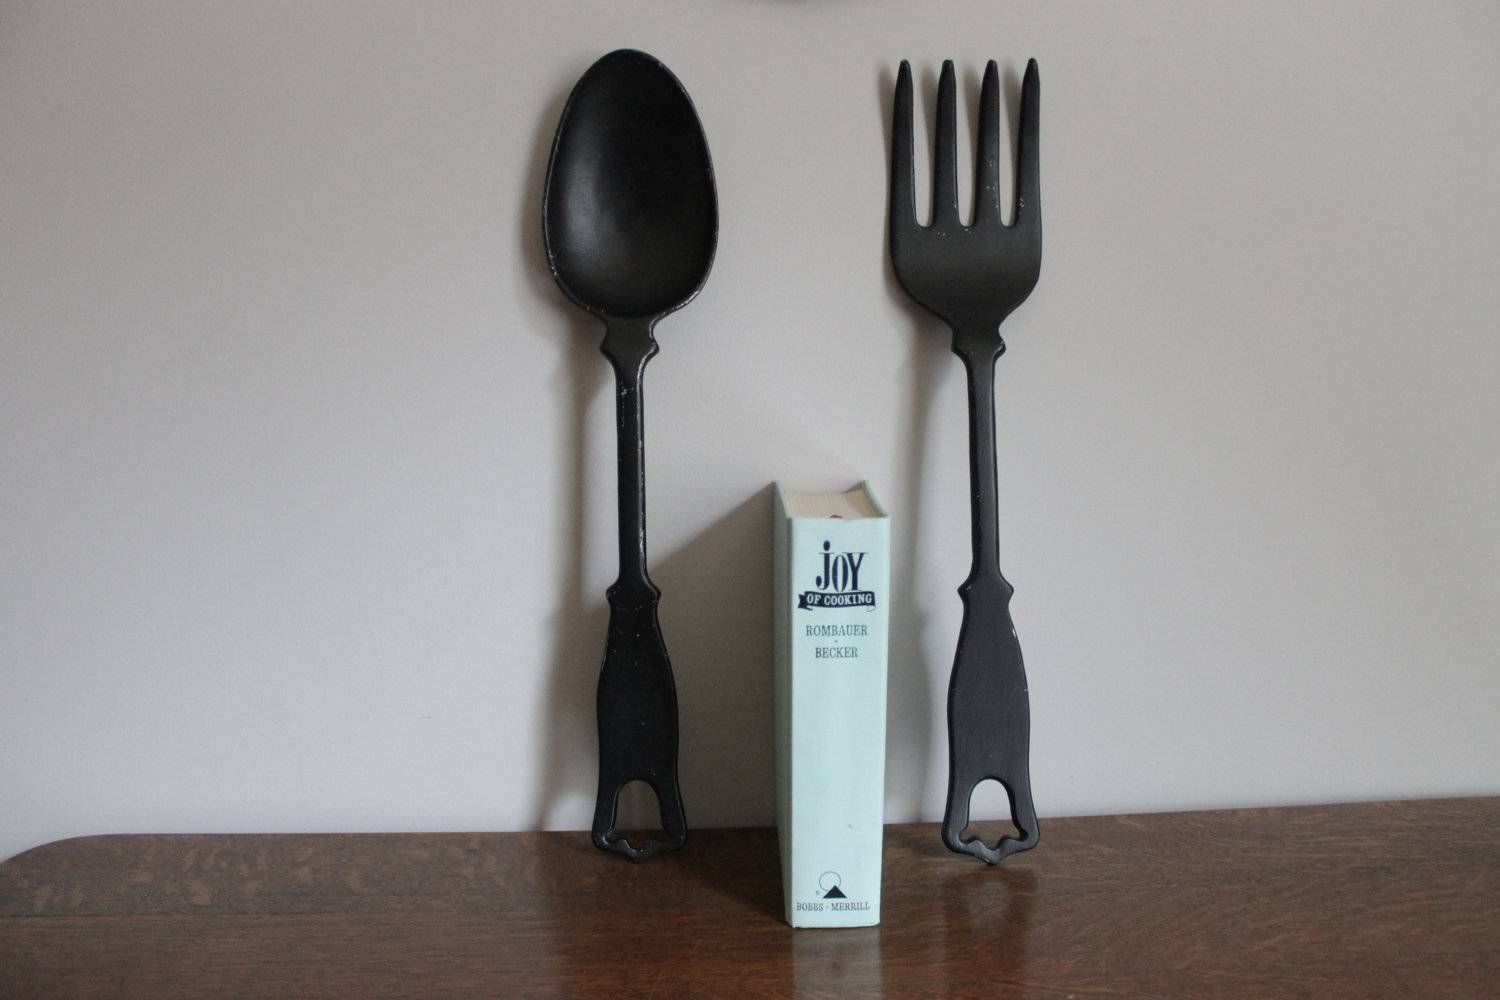 Giant Knife Fork And Spoon Wall Art : Giant Fork And Spoon Wall Inside Latest Oversized Cutlery Wall Art (View 6 of 20)